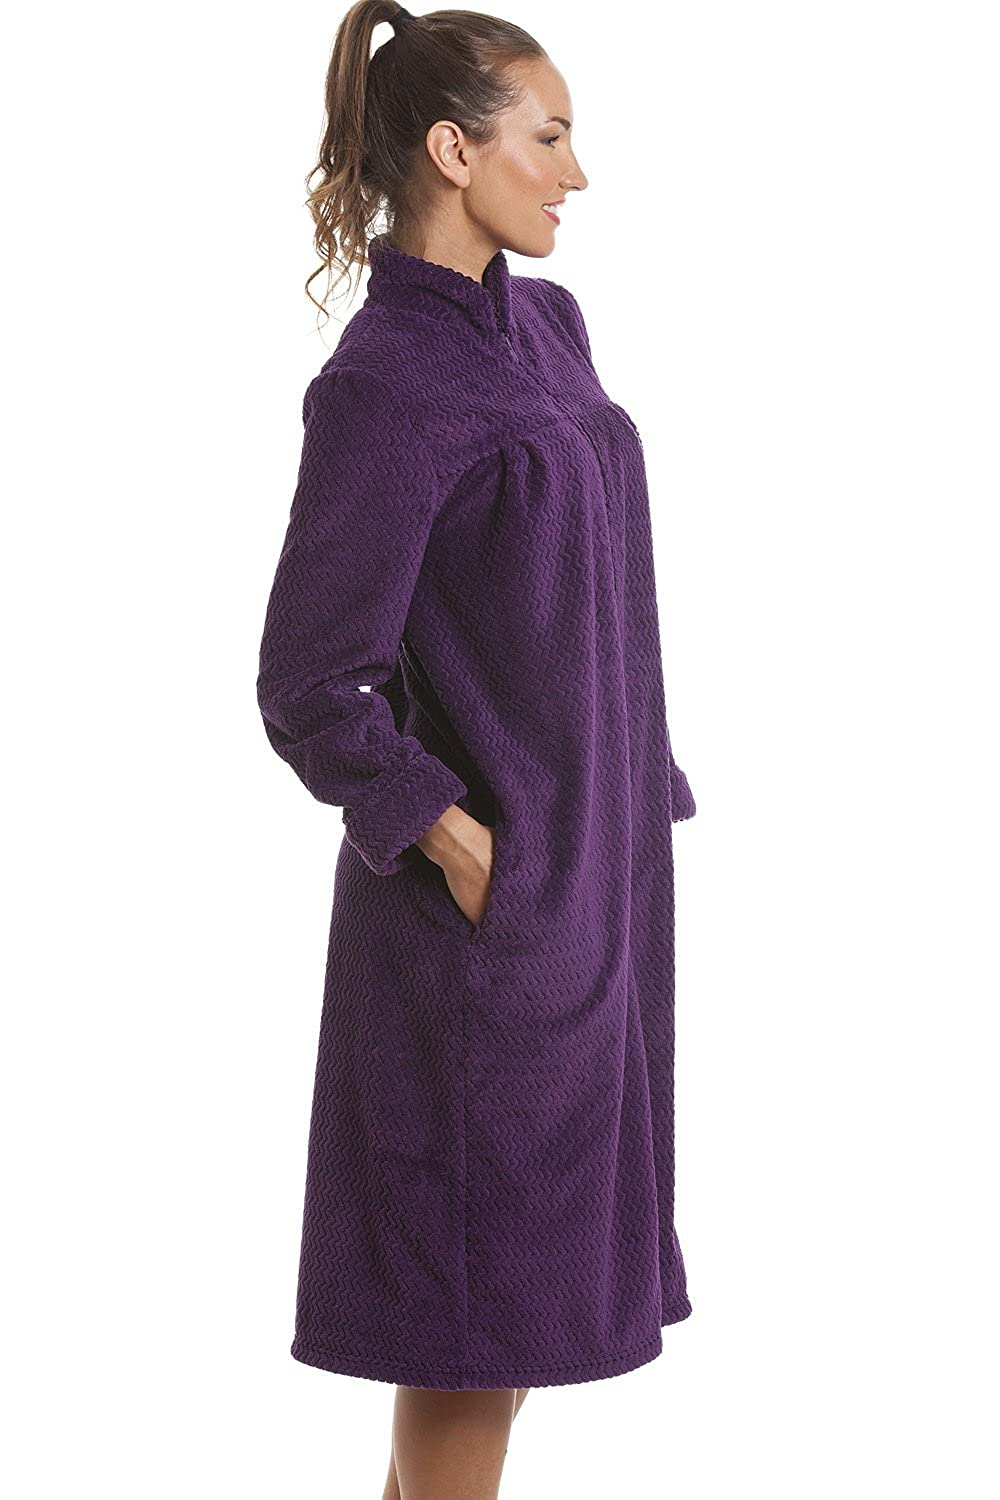 Camille Soft Fleece Purple Zip Front House Coat Dressing Gown ...